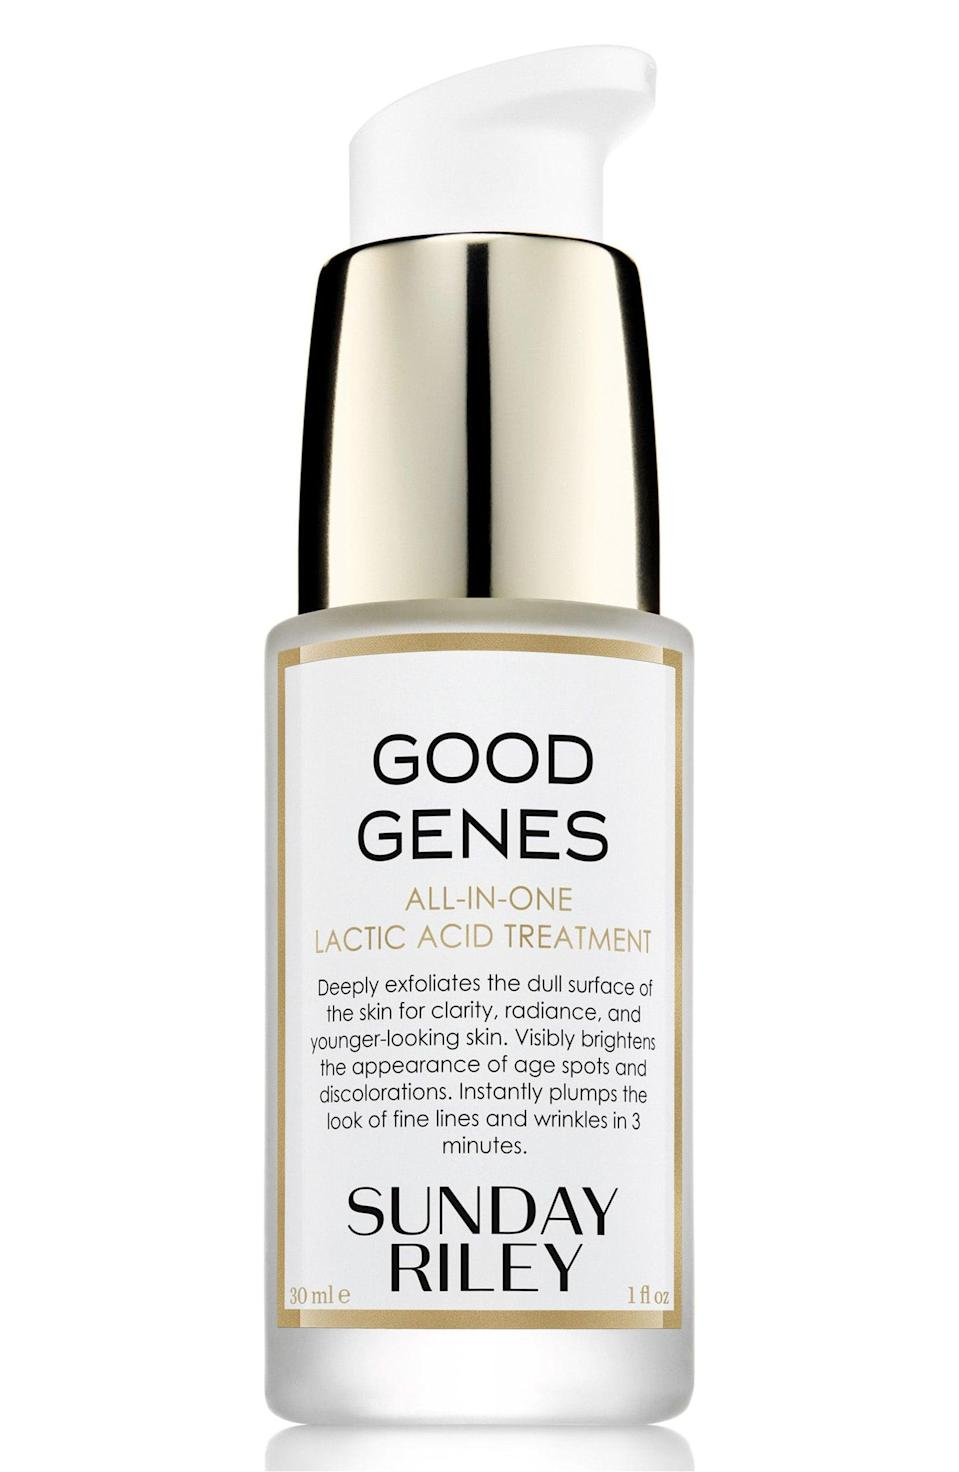 <p>It's already a cult favorite, but did you know that <span>Sunday Riley's Good Genes Treatment</span> ($105) is formulated with cactus and prickly pear extract to hydrate the skin while still treating hyperpigmentation and plumping up fine lines?</p>